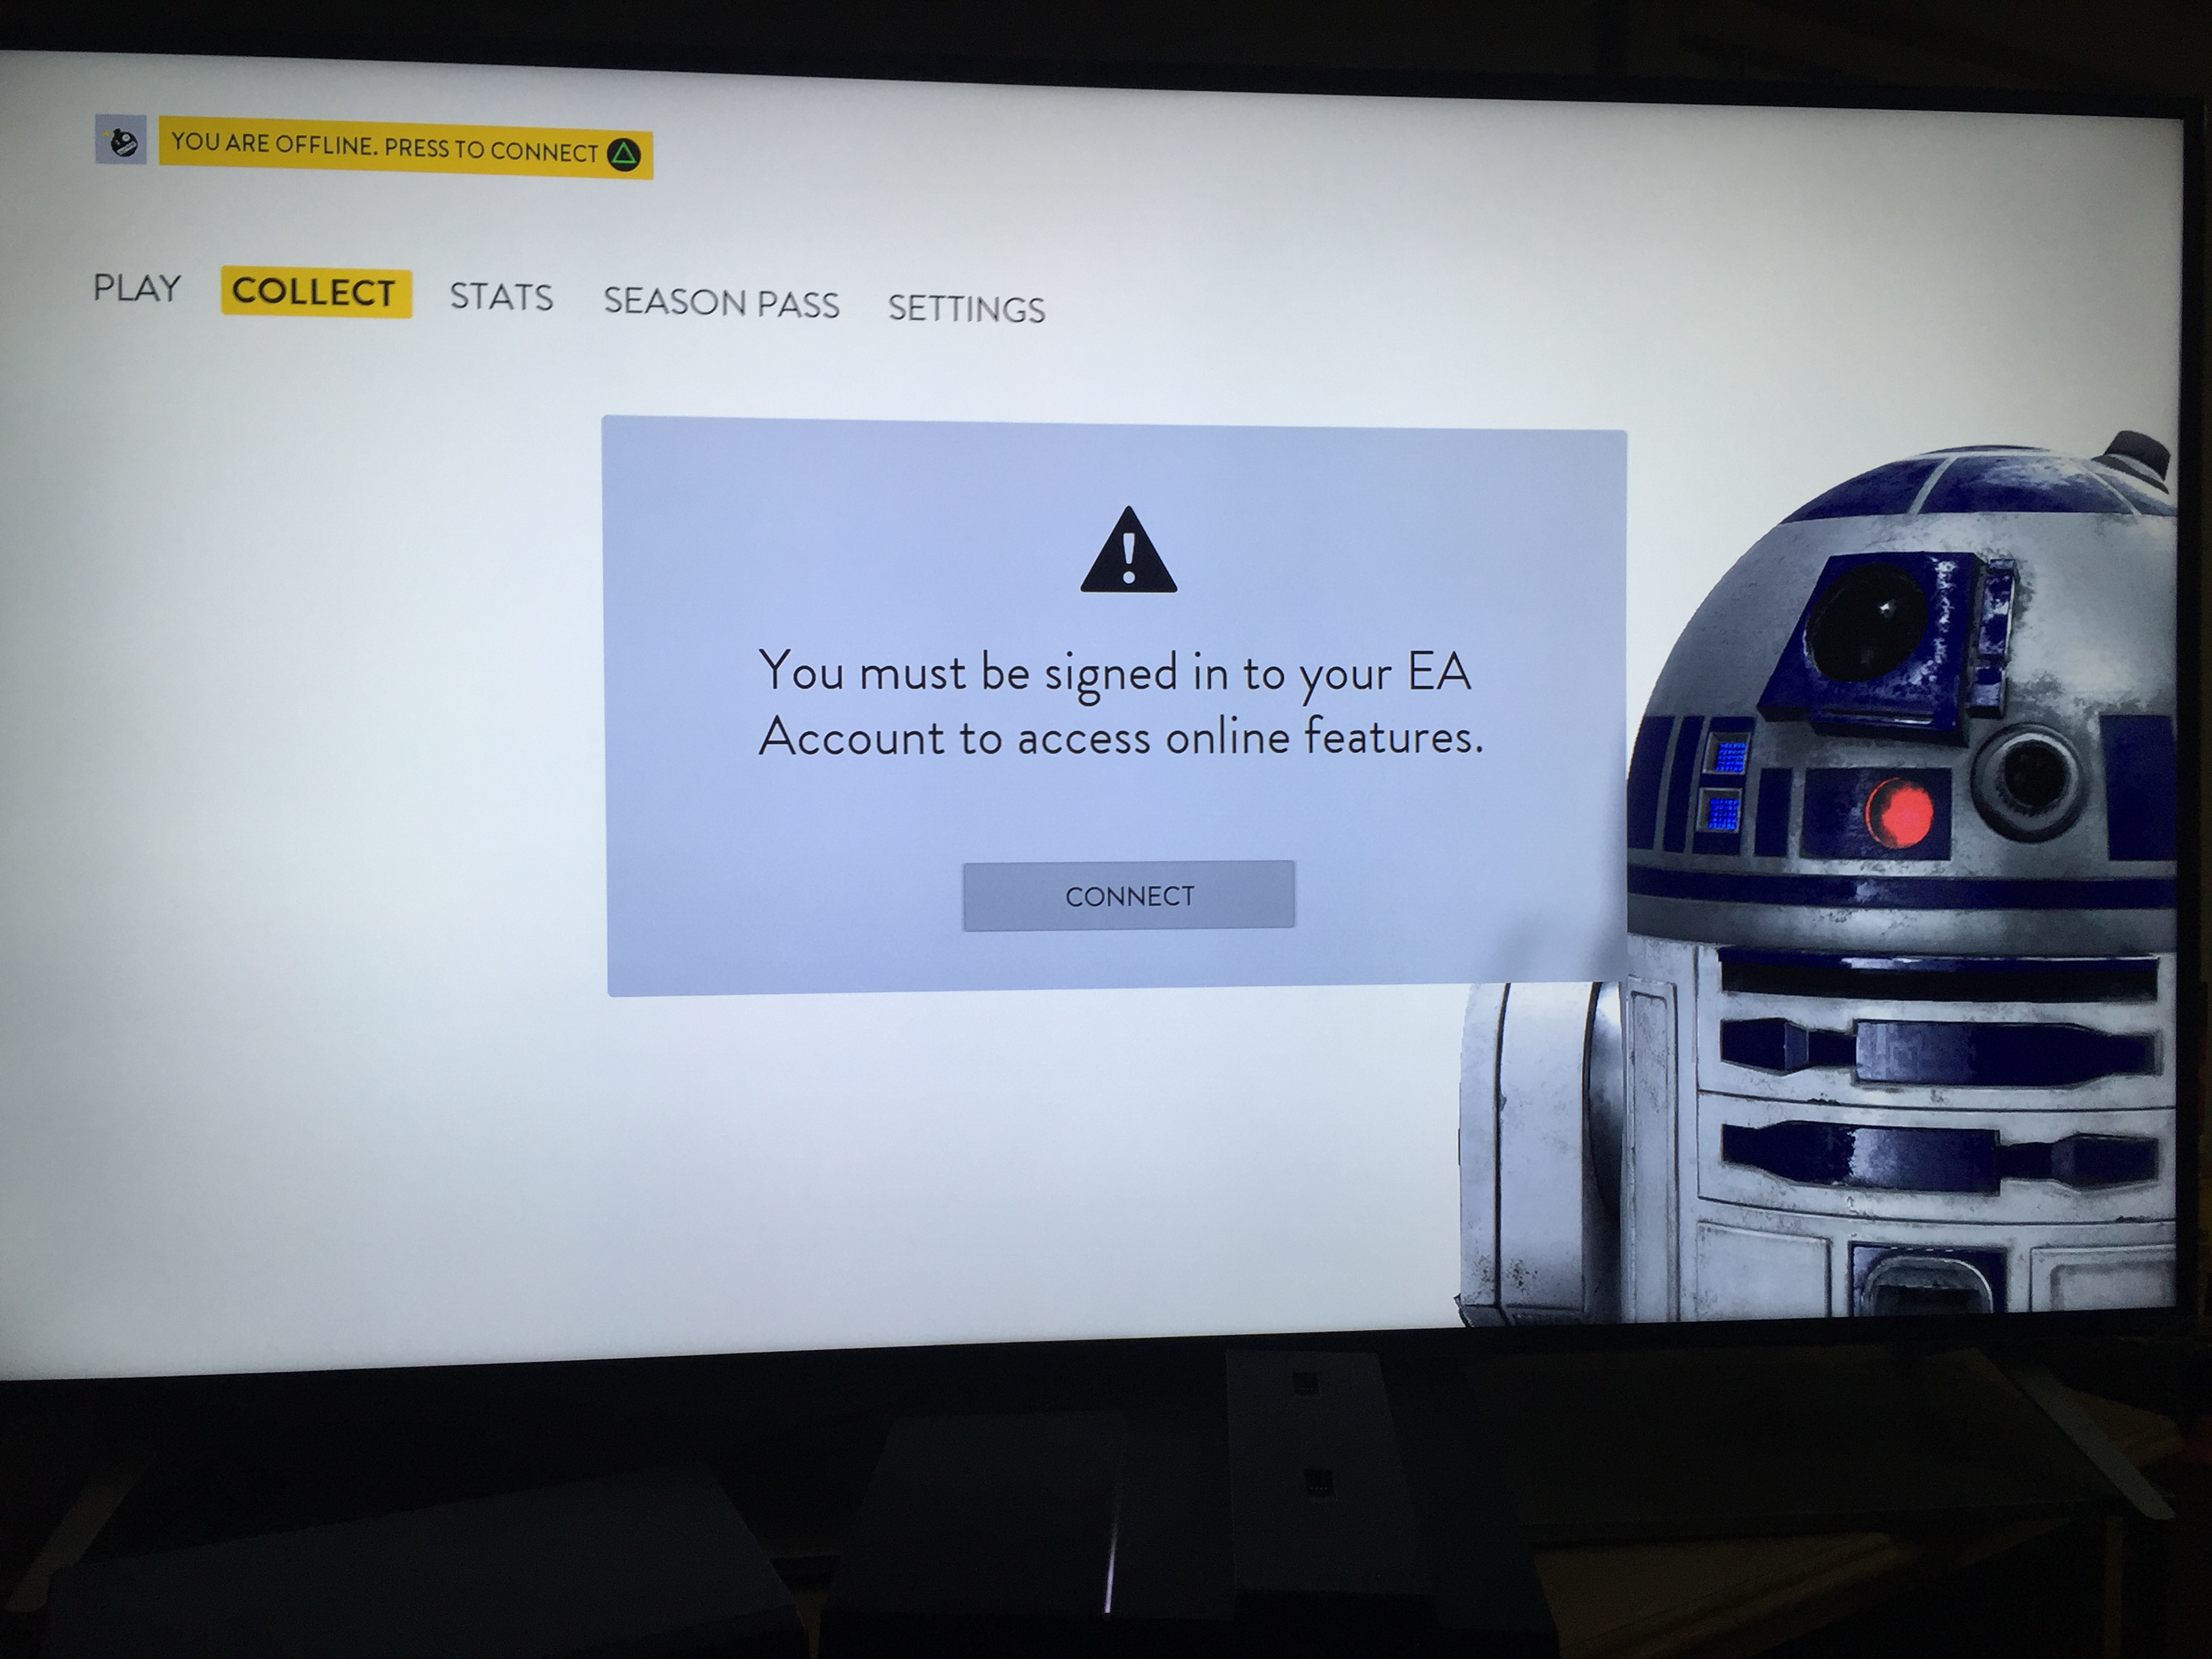 PS4 Battlefront unable to connect to EA server - Answer HQ